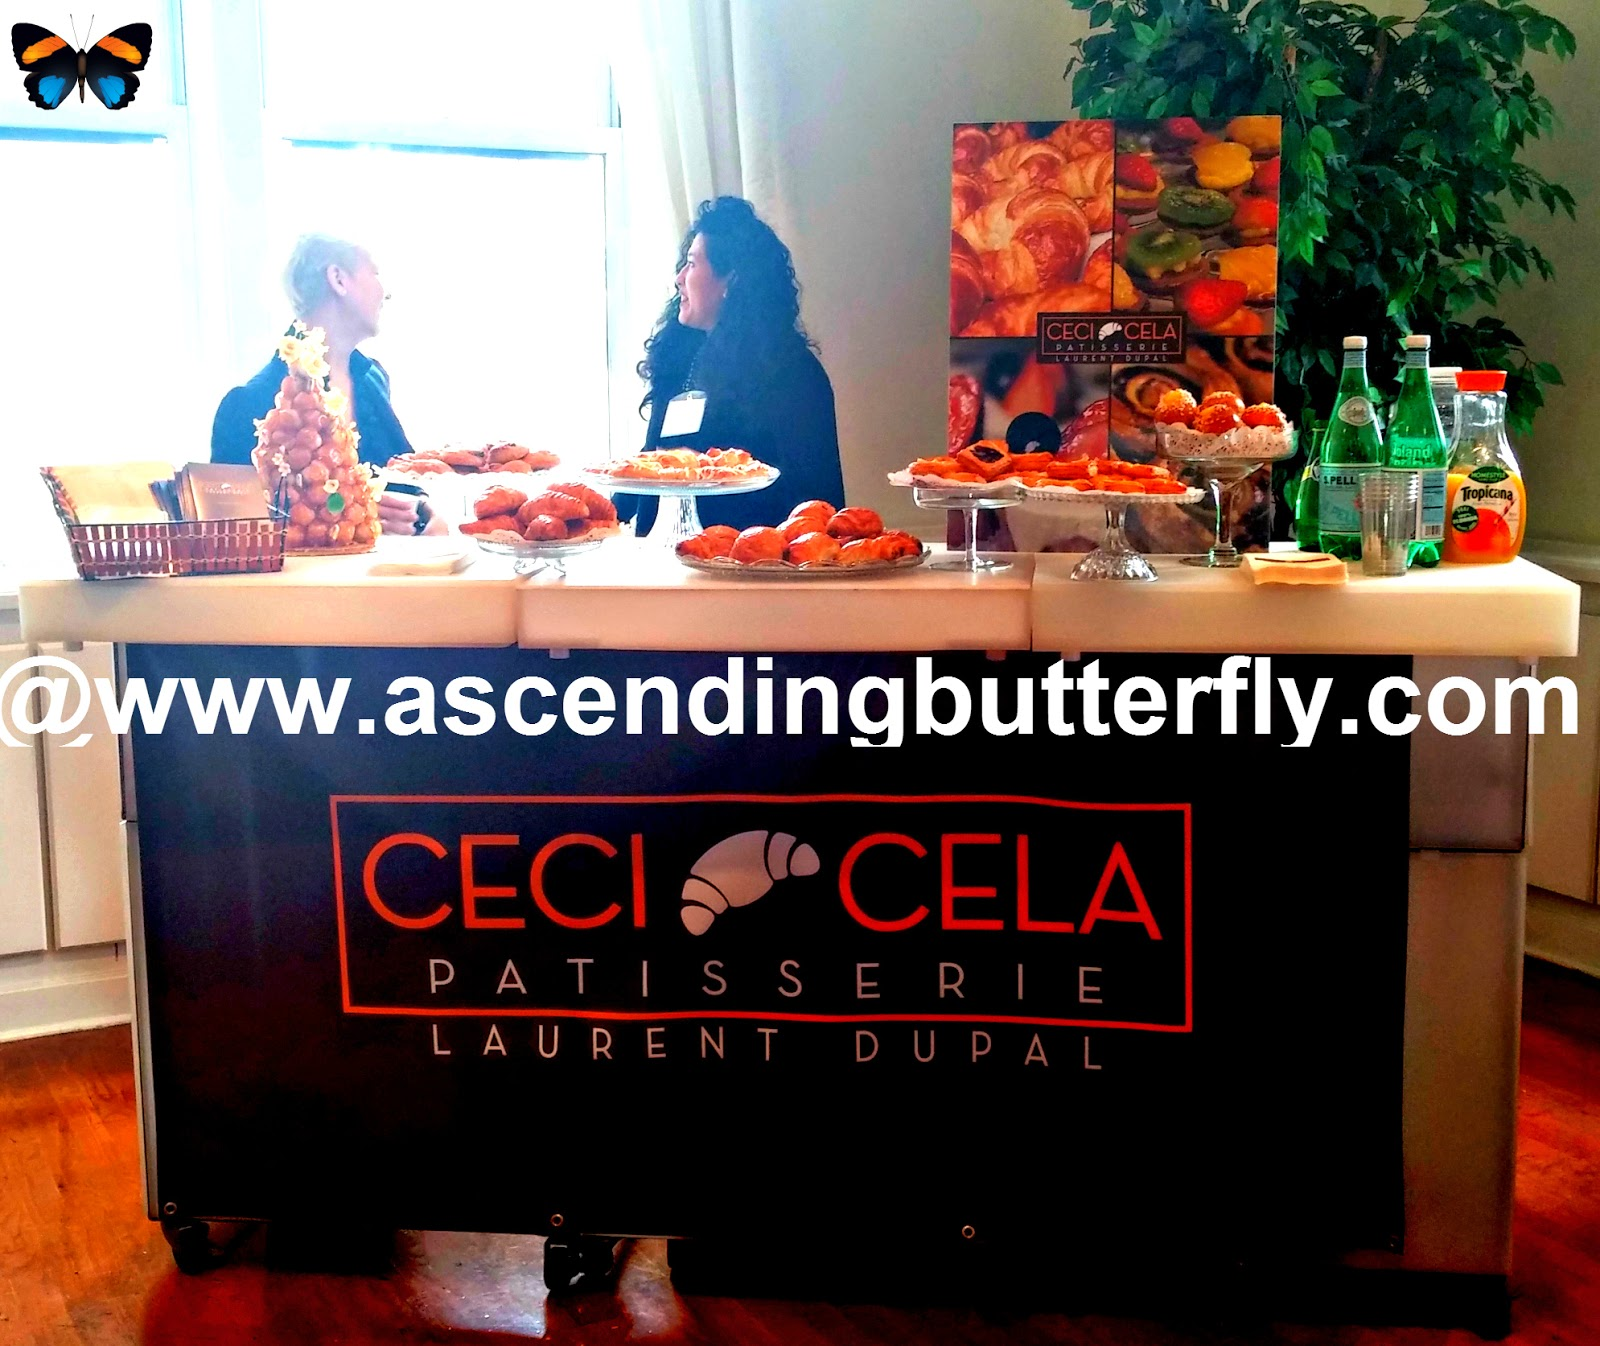 Ceci Cela Patisserie at BeautyPress Spotlight Day February 2014